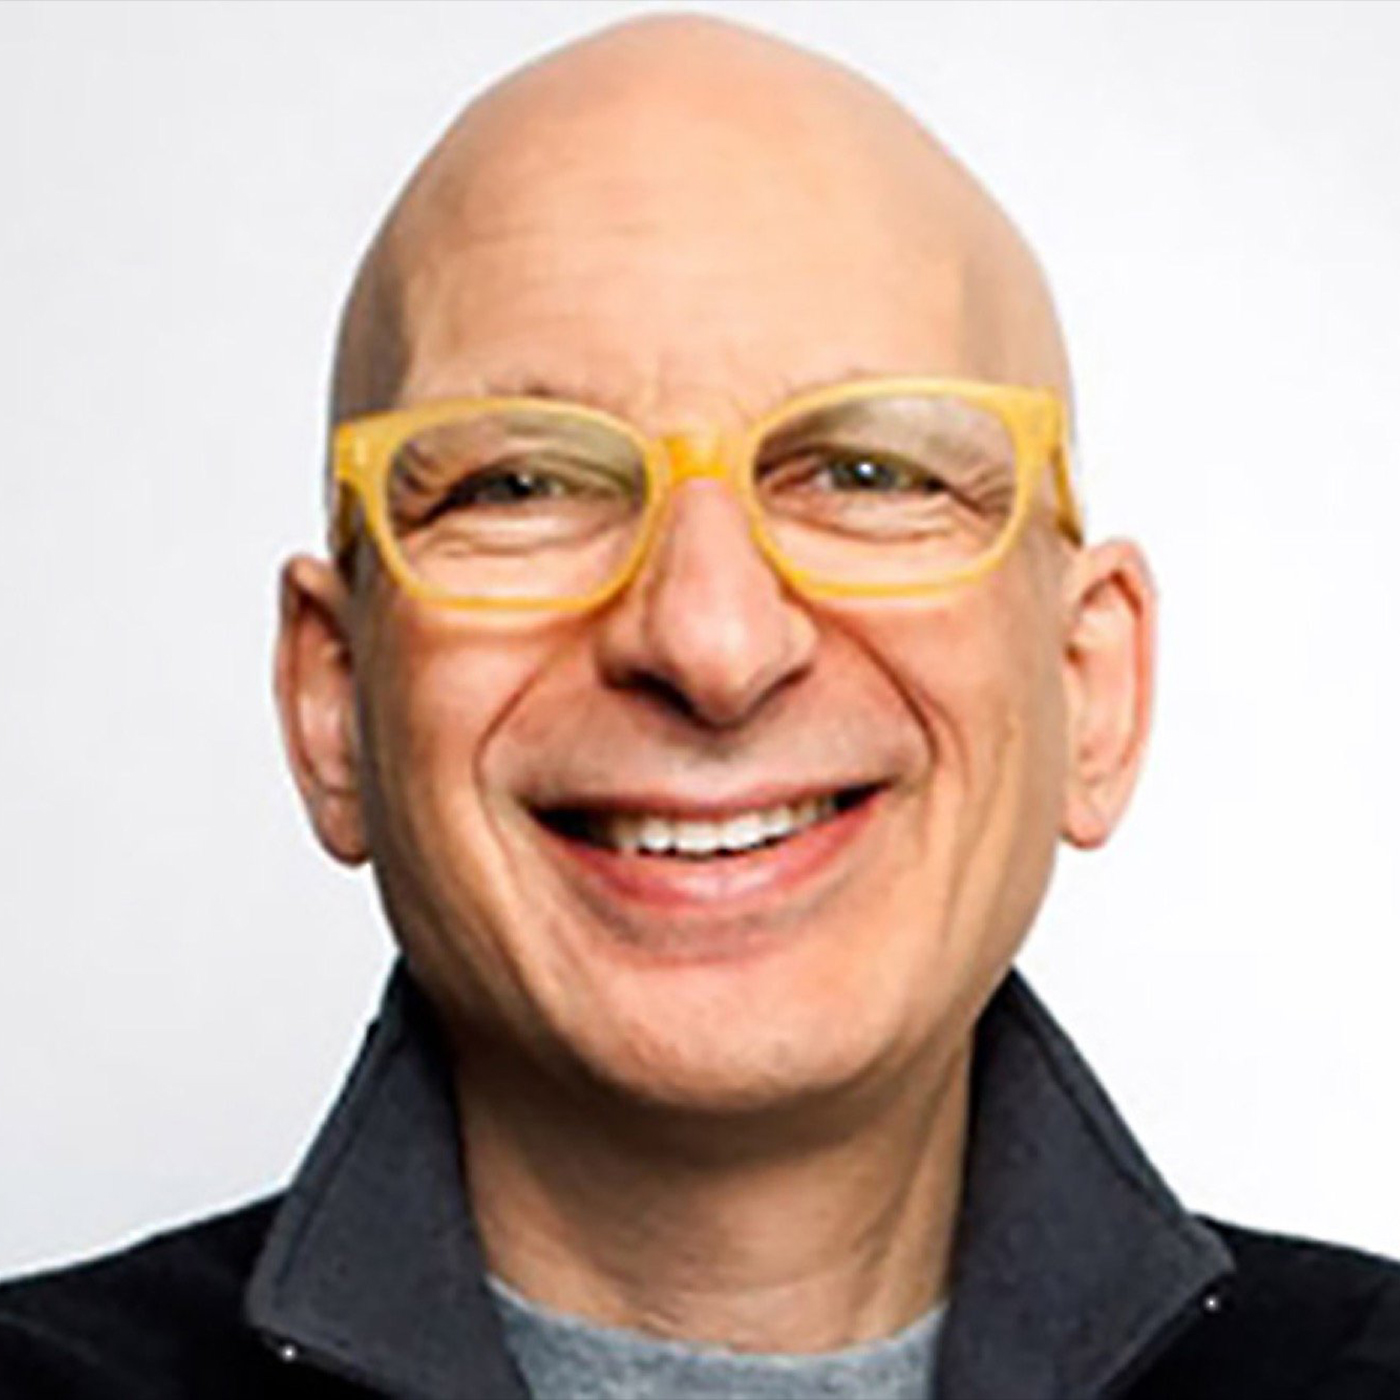 Episode 23 - Seth Godin - Marketing as a philosophy